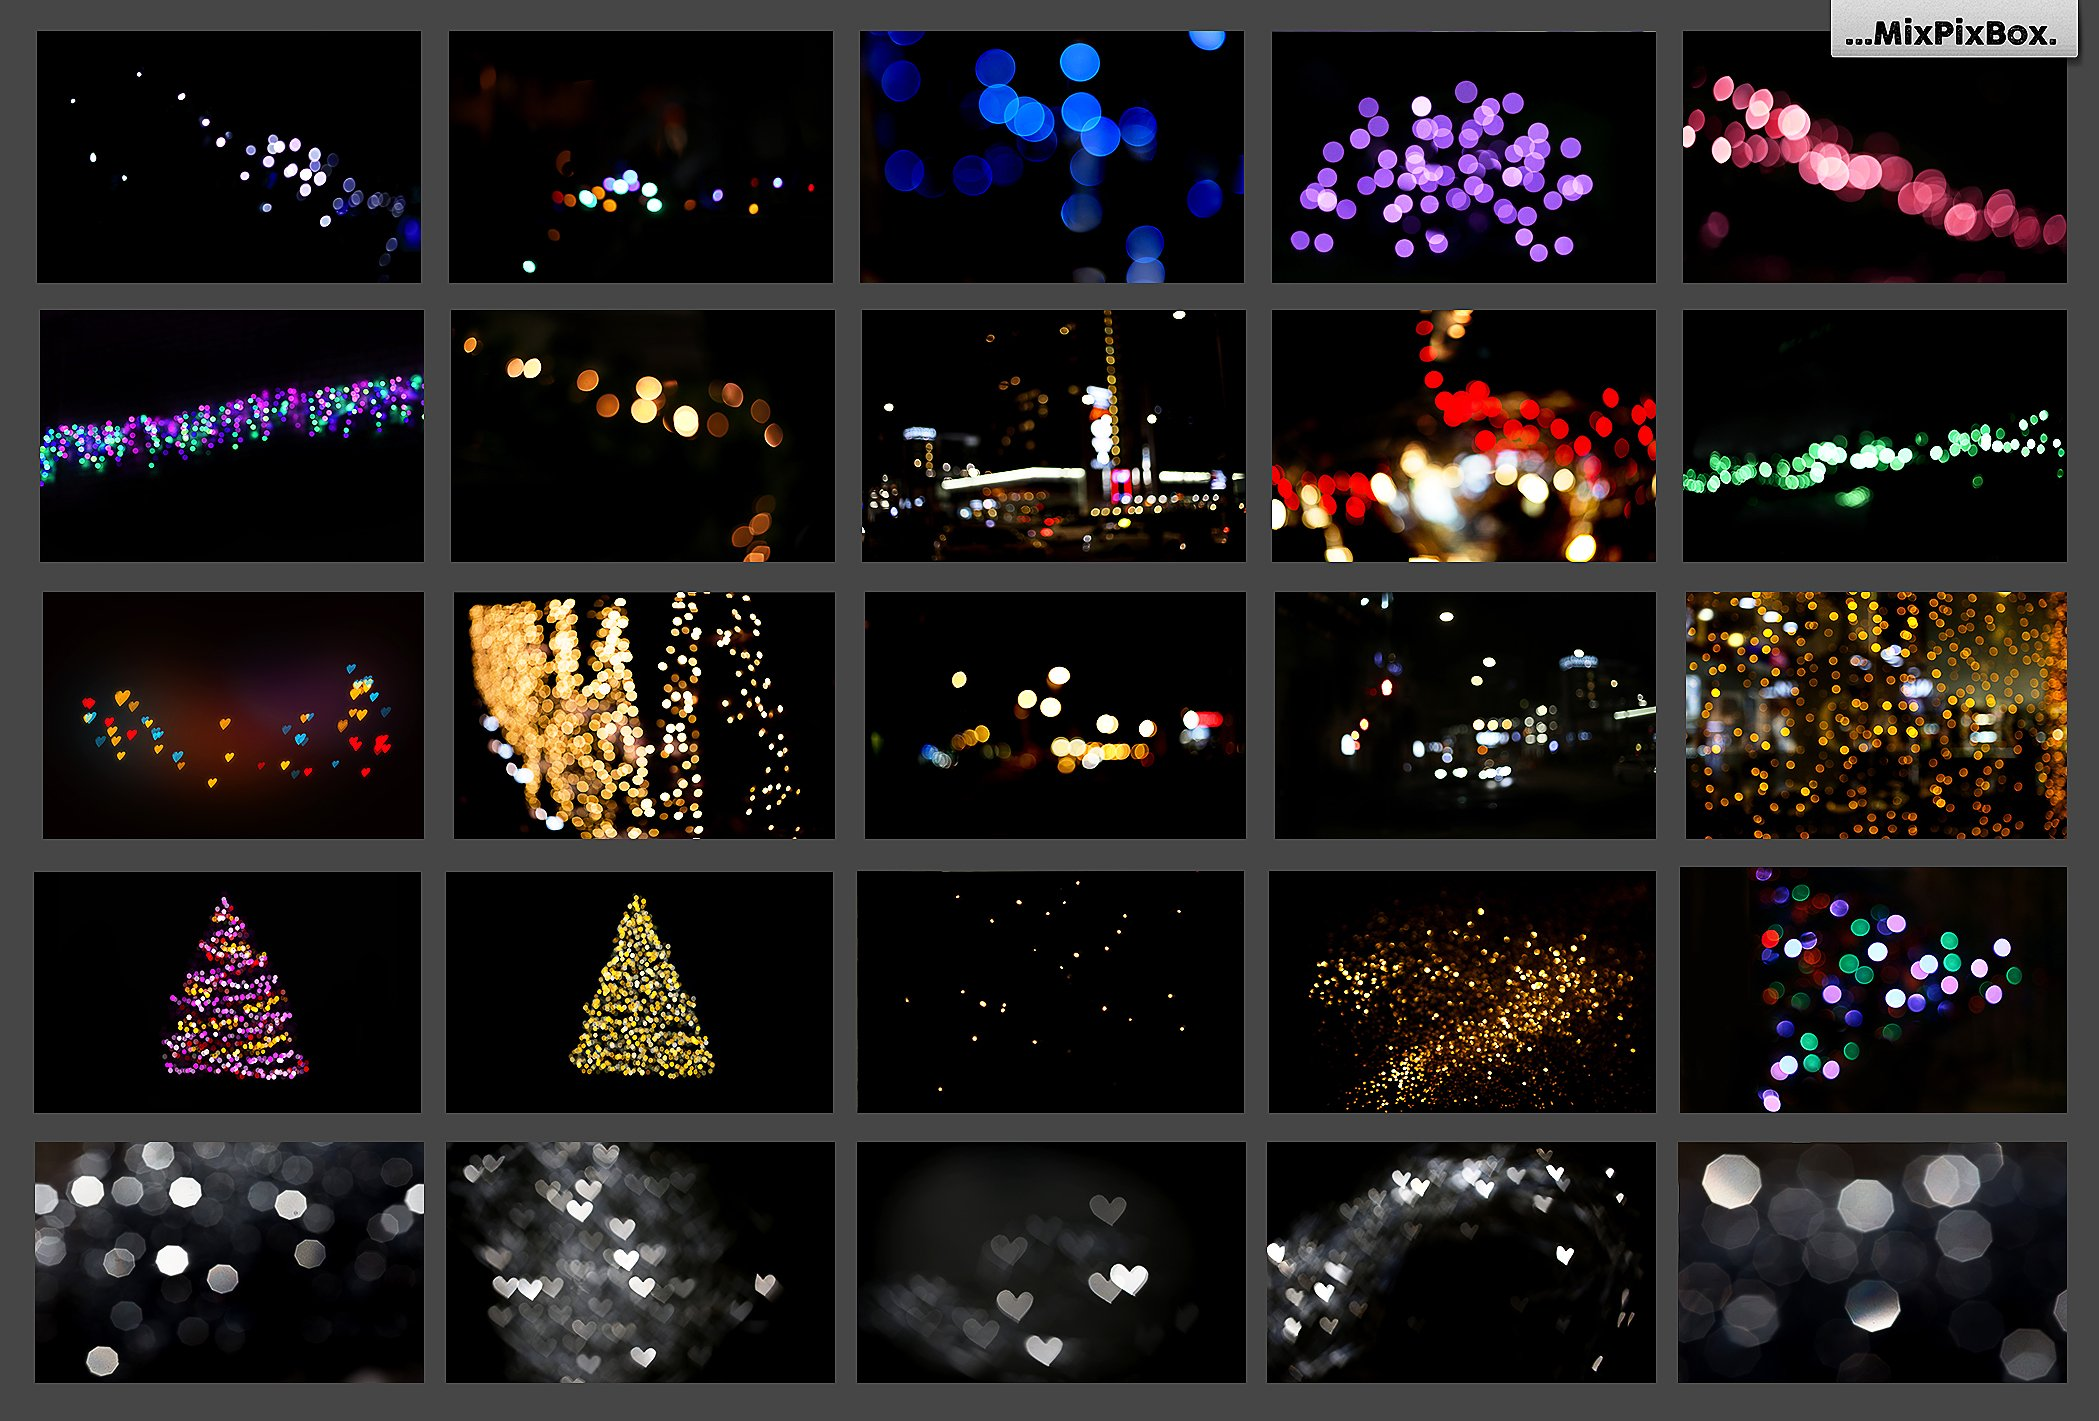 100 Bokeh Photo Overlays - $9 - 6 2